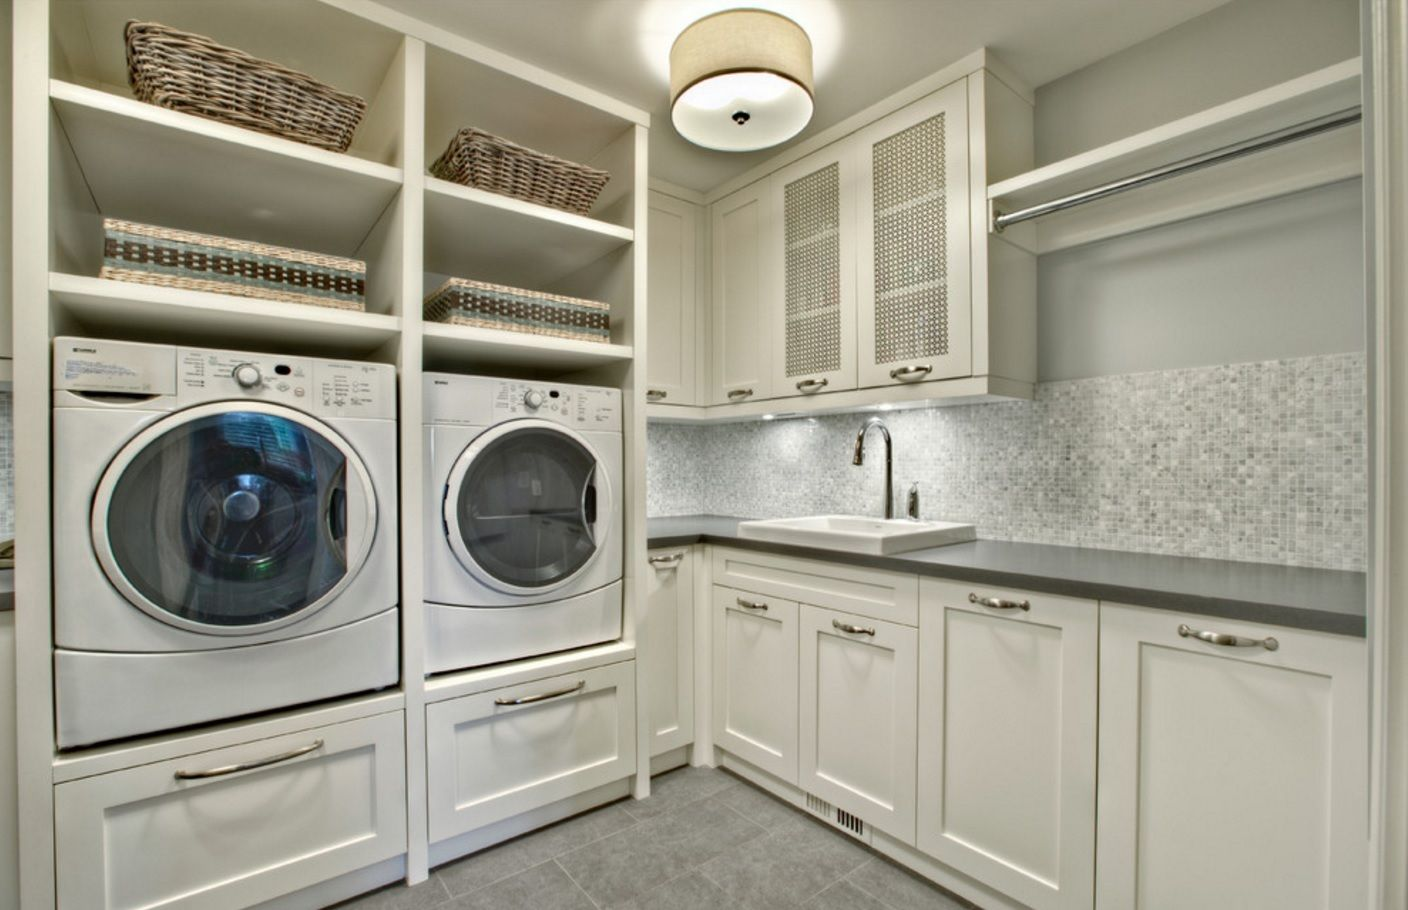 Laundry Allocation Options for Modern Home Interior. Classic styled room with ultramodern machines looks organic